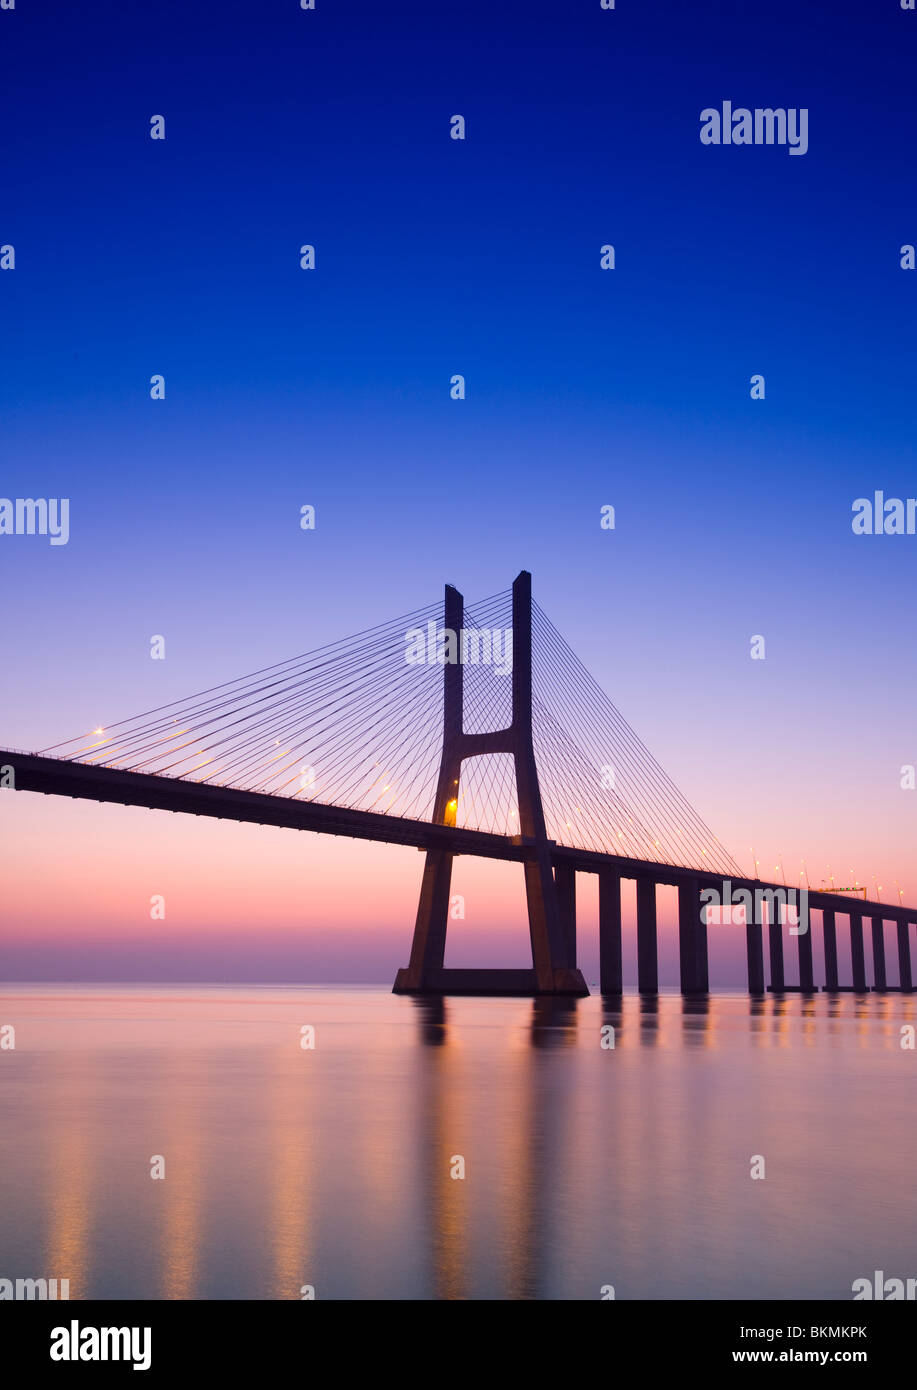 Vasco Da Gama suspension bridge at dawn, Lisbon, Portugal - Stock Image